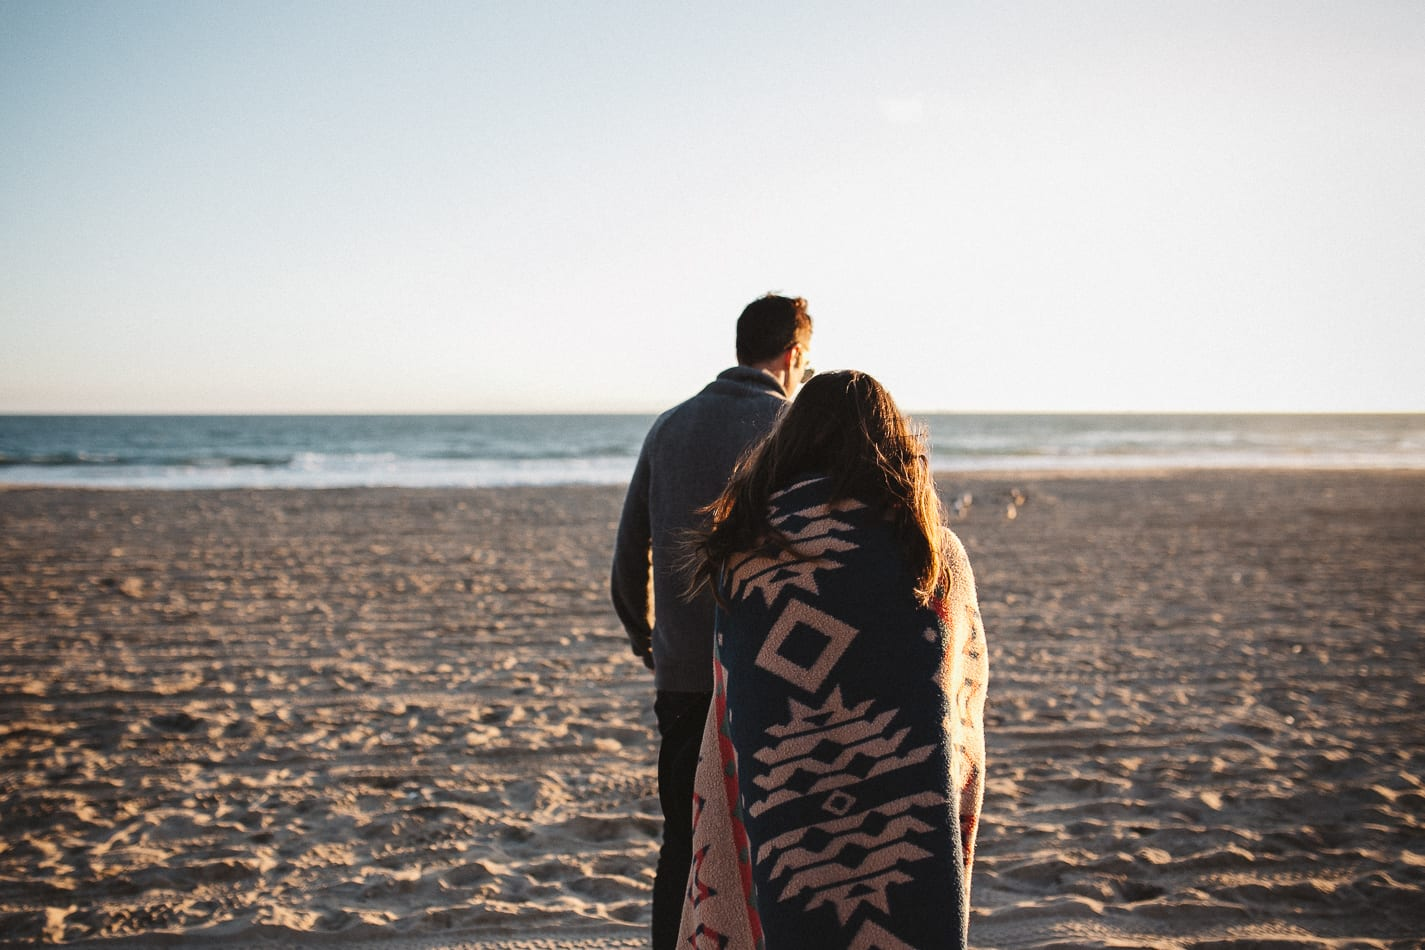 jason-alyssa-huntington-beach-california-engagement-photographer-1